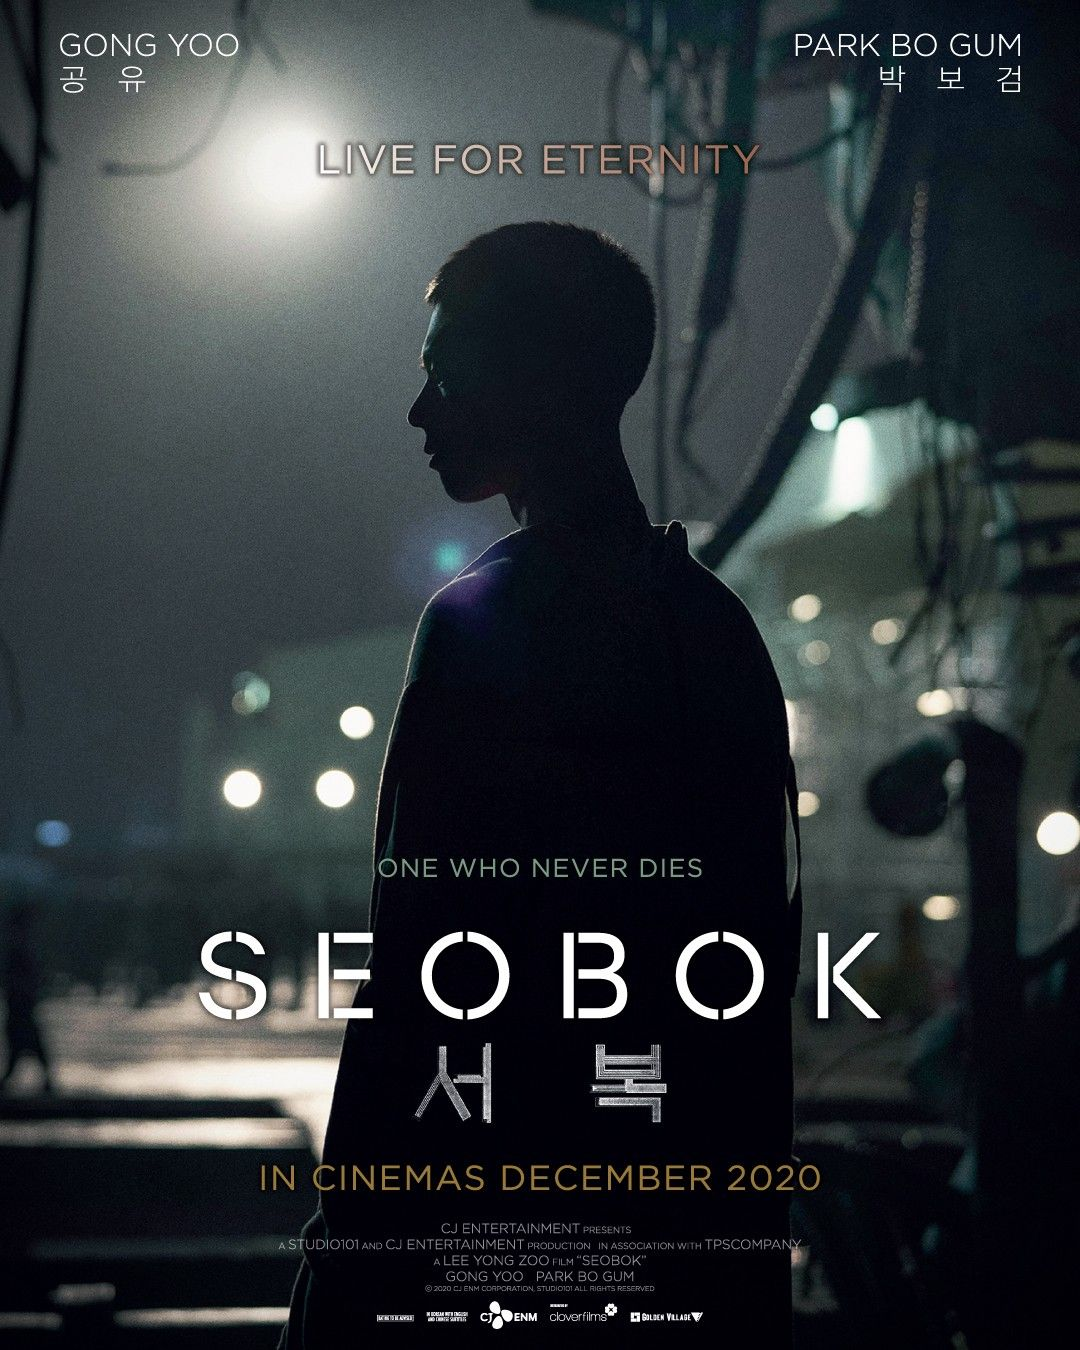 """Poster for <SeoBok>released (""""Gong Yoo"""" version) Gong Yoo X Park Bo Gum < SeoBok> first round poster released Now the last mission in the life of  """"Ki-heon"""" and h…"""